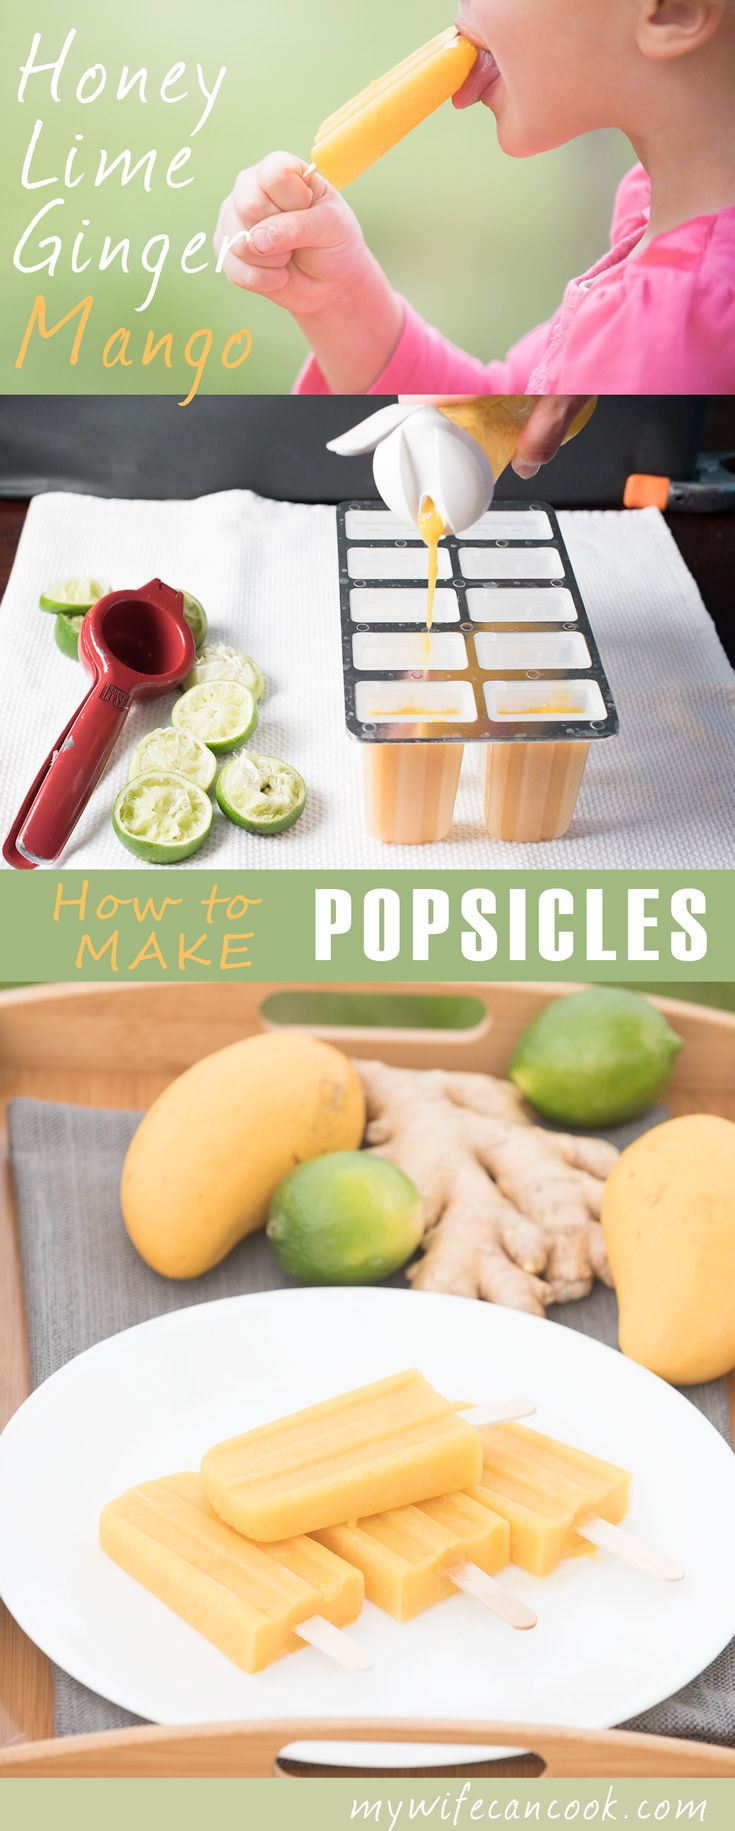 Homemade popsicles are super easy to do and what kid doesn't love popsicles as a warm weather treat? Sure, you can buy them at the store, but you're giving up control of the ingredients. We make lots of homemade fruit popsicles; it's a great way to get your kids excited about working in the kitchen. We're about to give you all the basics on how to make homemade popsicles (including our favorite popsicle molds). We'll even show you one of our new favorites: honey, lime, ginger mango…